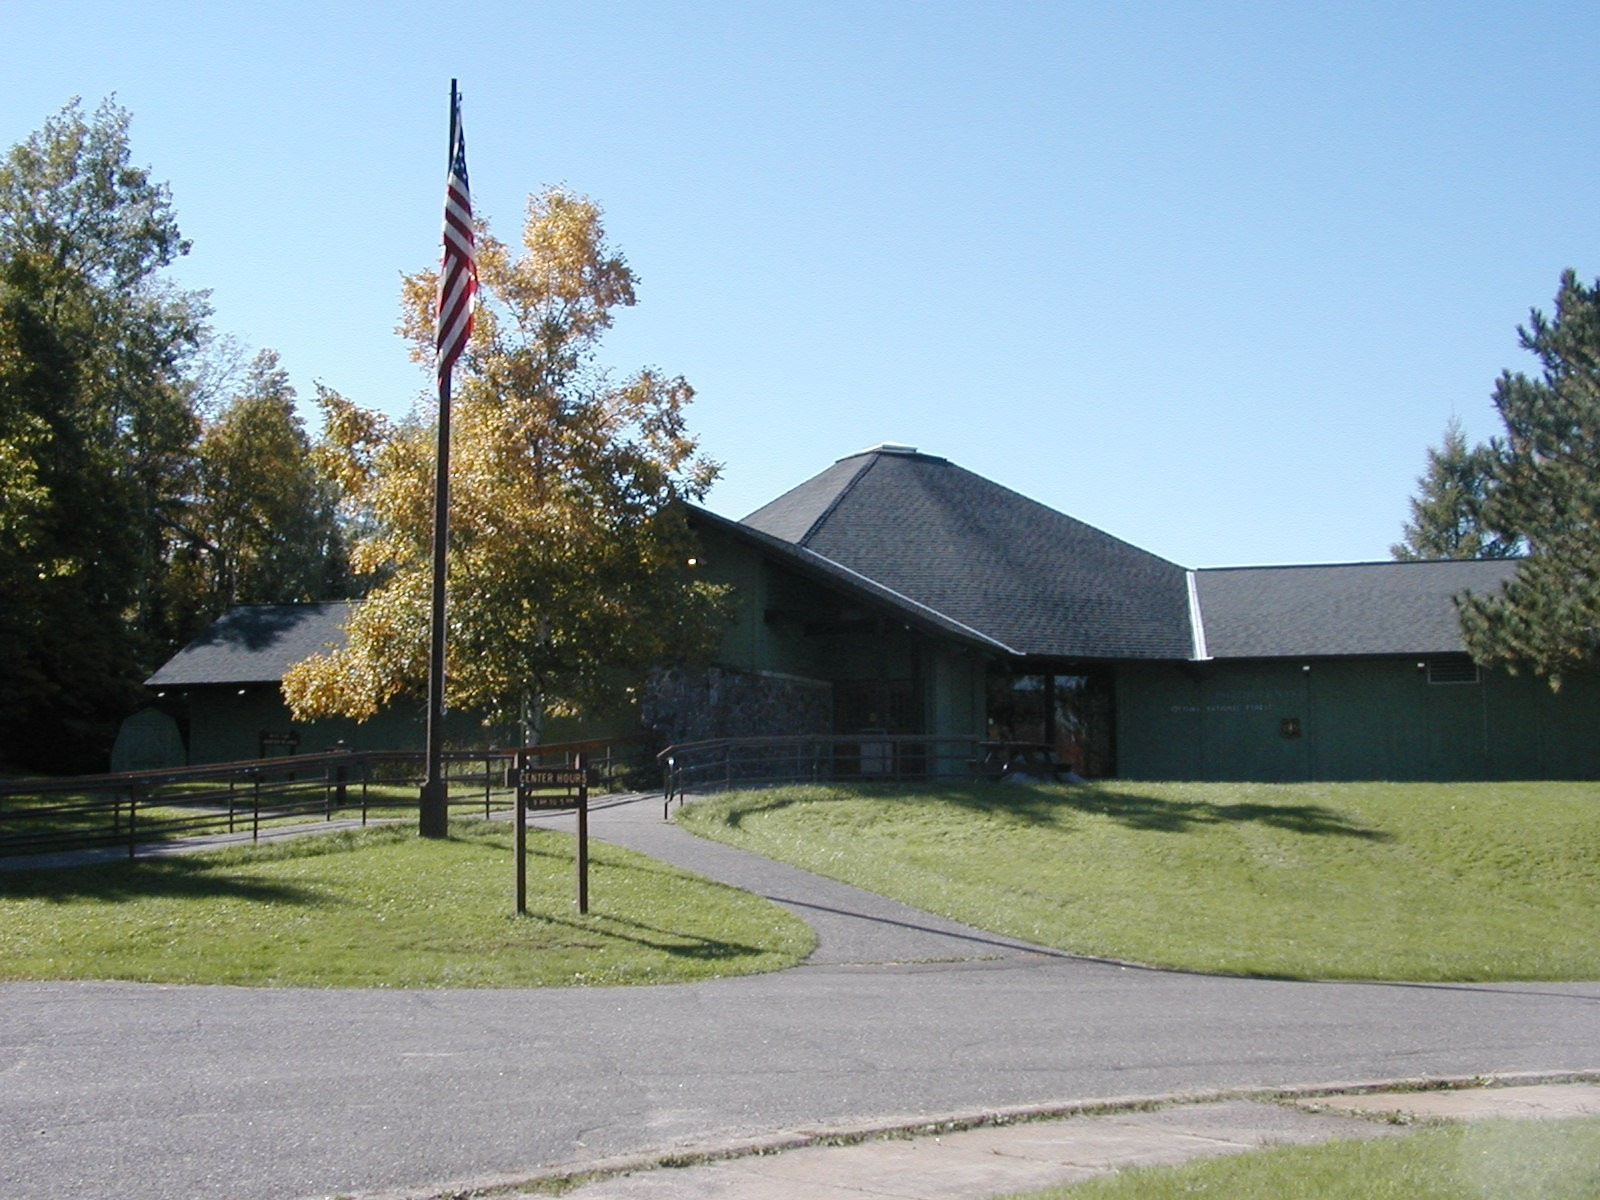 Image of Visitor Center